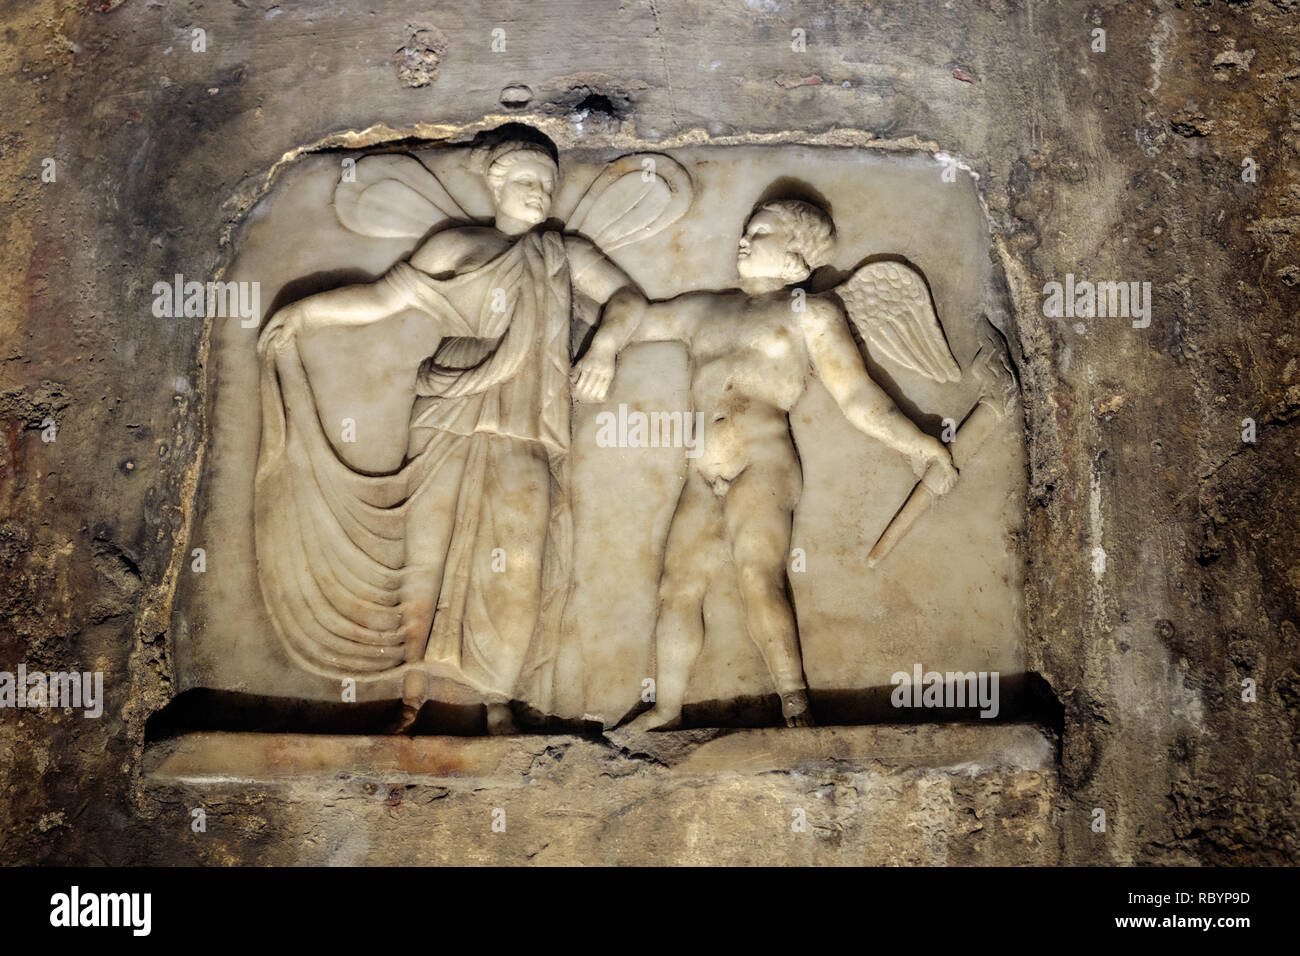 The Mithraeum of Capua goes back to the antiquity and is one of the most important. On of its attractions is a bas-relief of Cupid and Psyche. - Stock Image